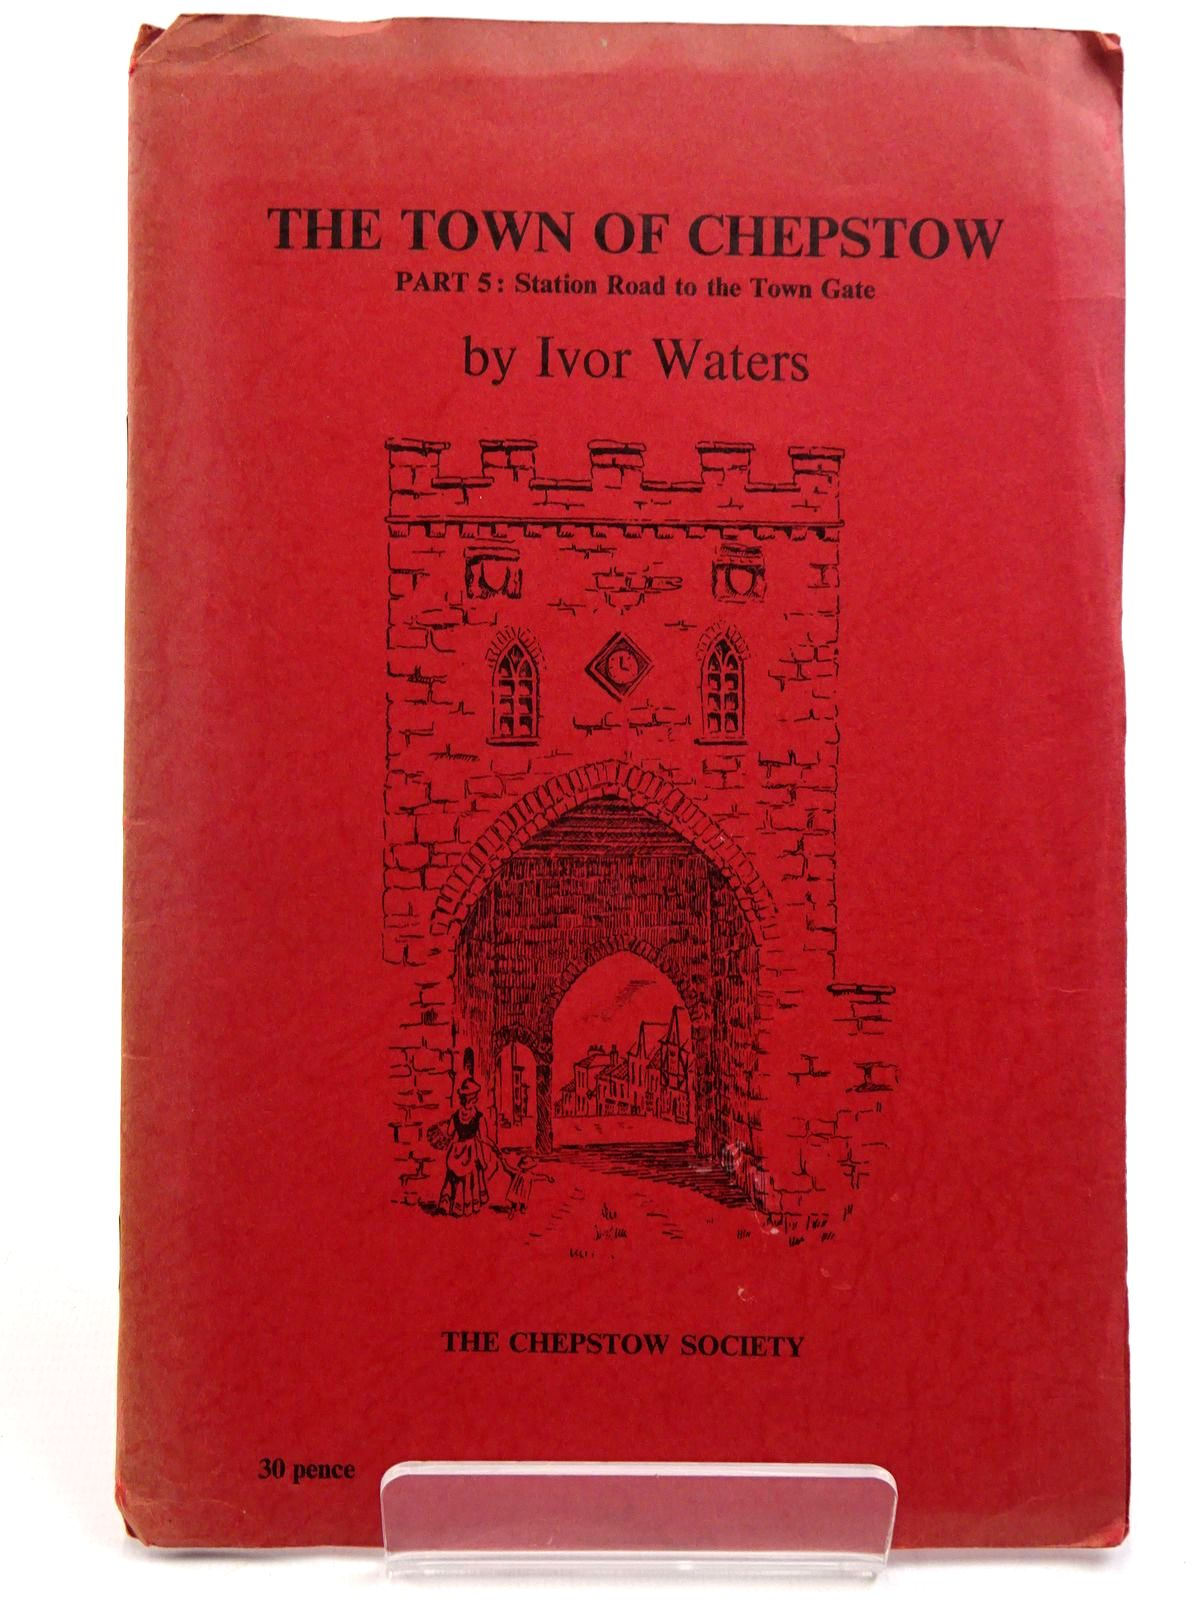 Photo of THE TOWN OF CHEPSTOW PART 5 written by Waters, Ivor illustrated by Waters, Mercedes published by The Chepstow Society (STOCK CODE: 2130914)  for sale by Stella & Rose's Books